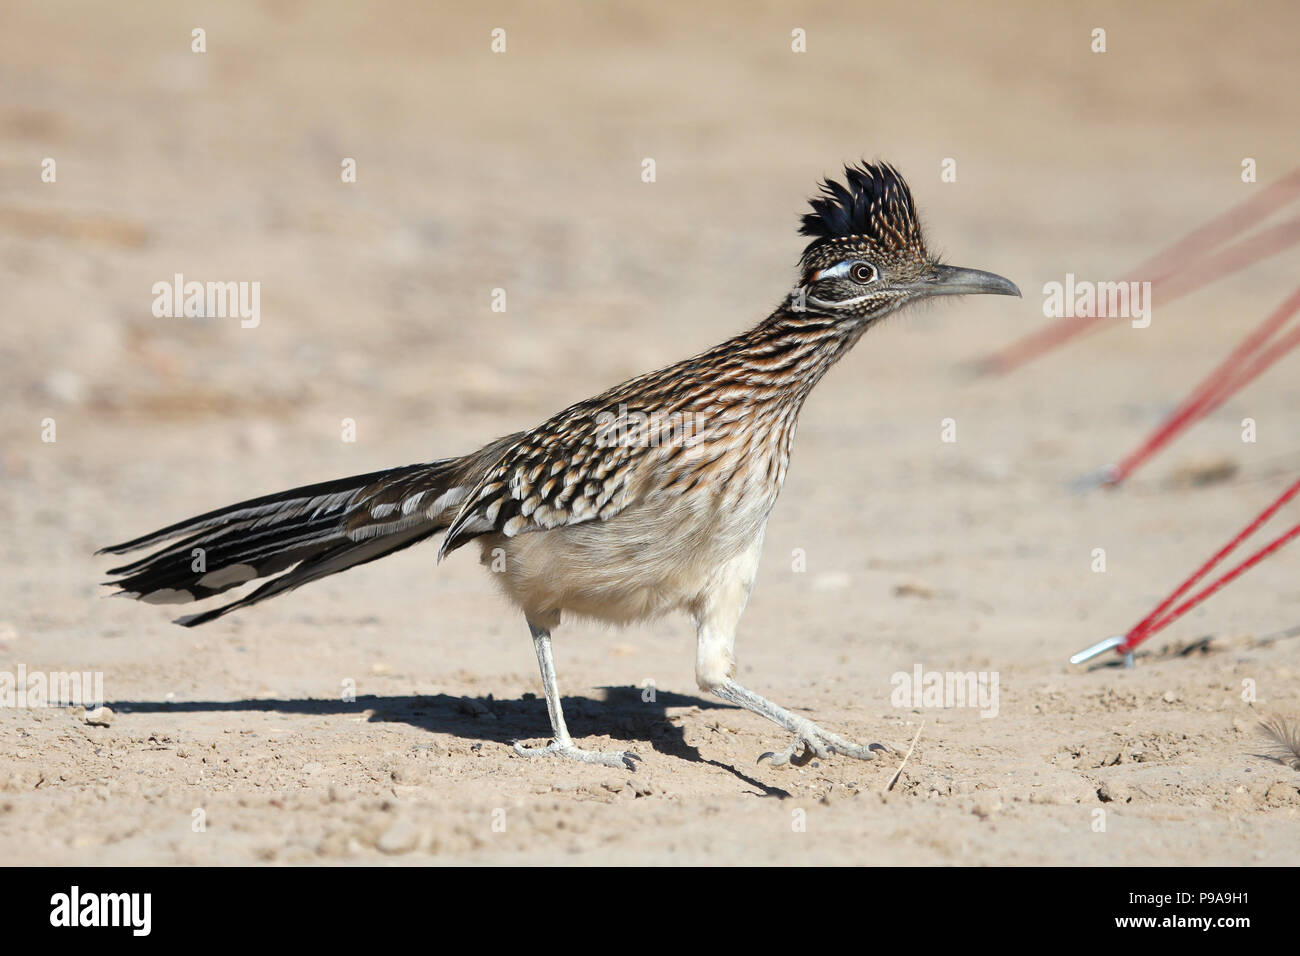 A Roadrunner making its way through a campsite in the furnace creek area of Death Valley National Park - Stock Image